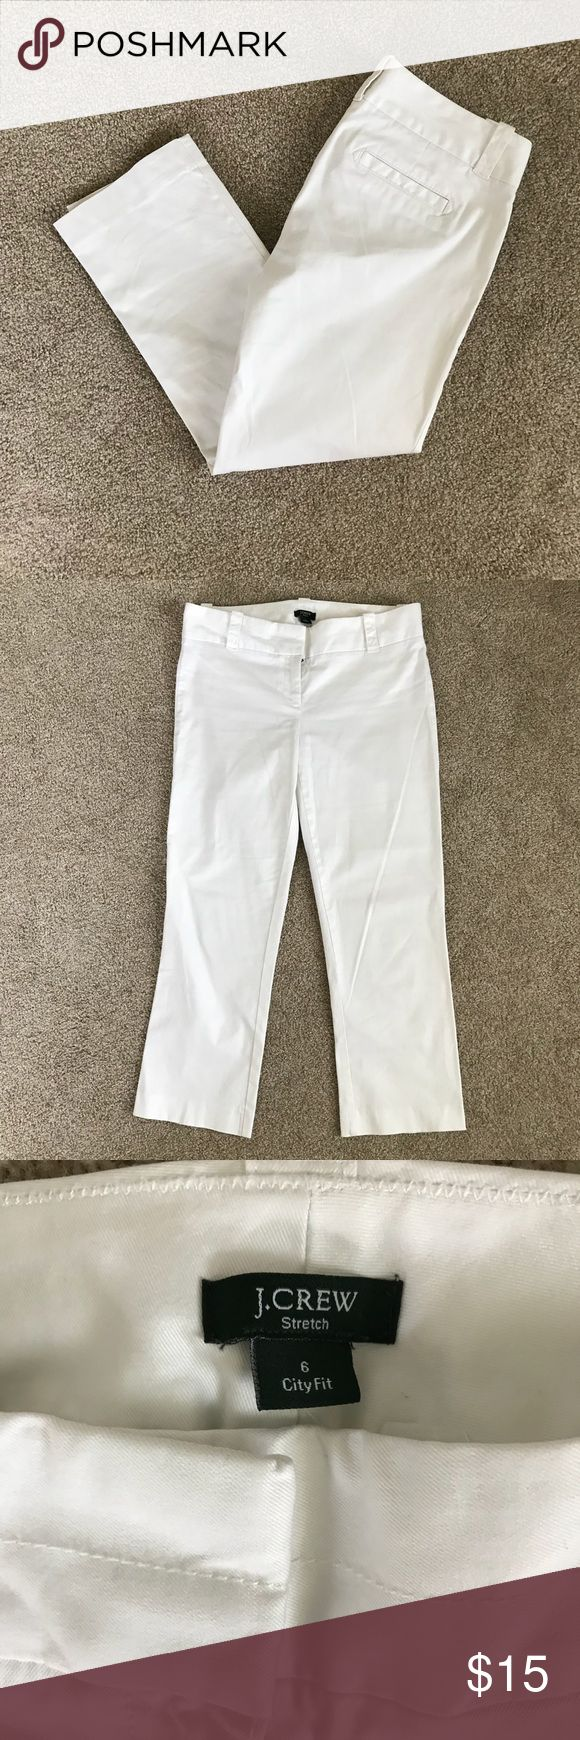 """J. Crew City Fit White Cropped Pants Excellent used condition J. Crew City Fit white, Crop Pants in women's size 6  Approx. Measurements...  Waist - 34""""  inseam - 22""""  rise - 8""""  All reasonable offers will be considered. J. Crew Pants Ankle & Cropped"""